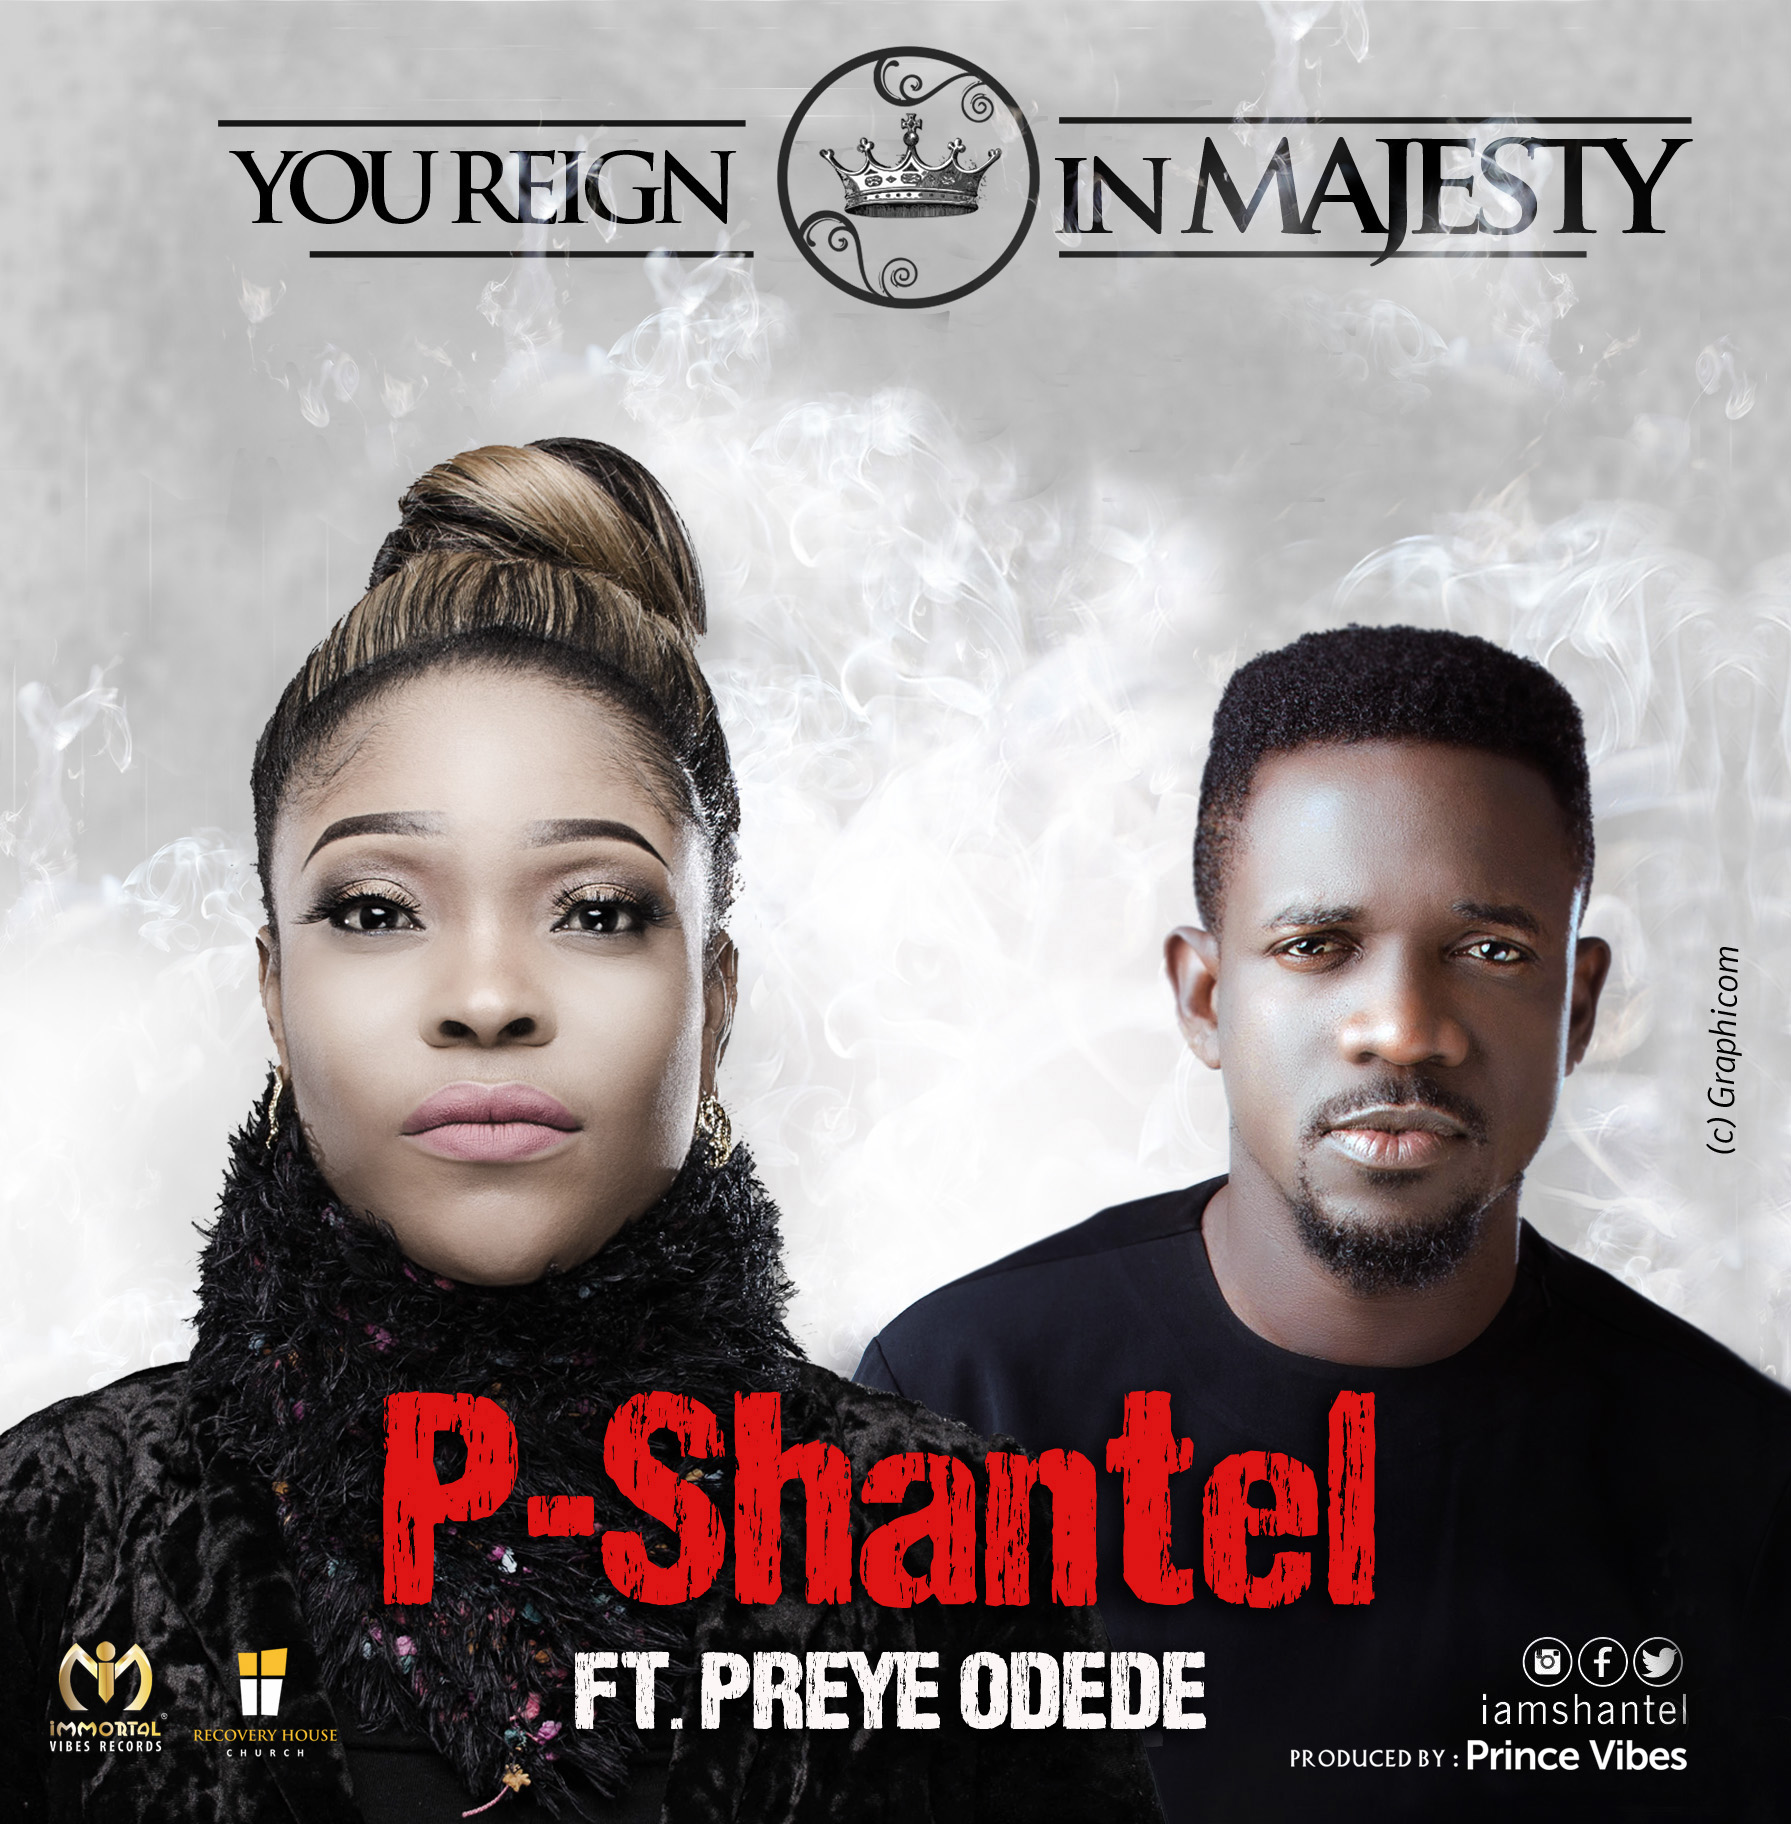 You Reign In Majesty -BY- PShantel FT Preye Odede